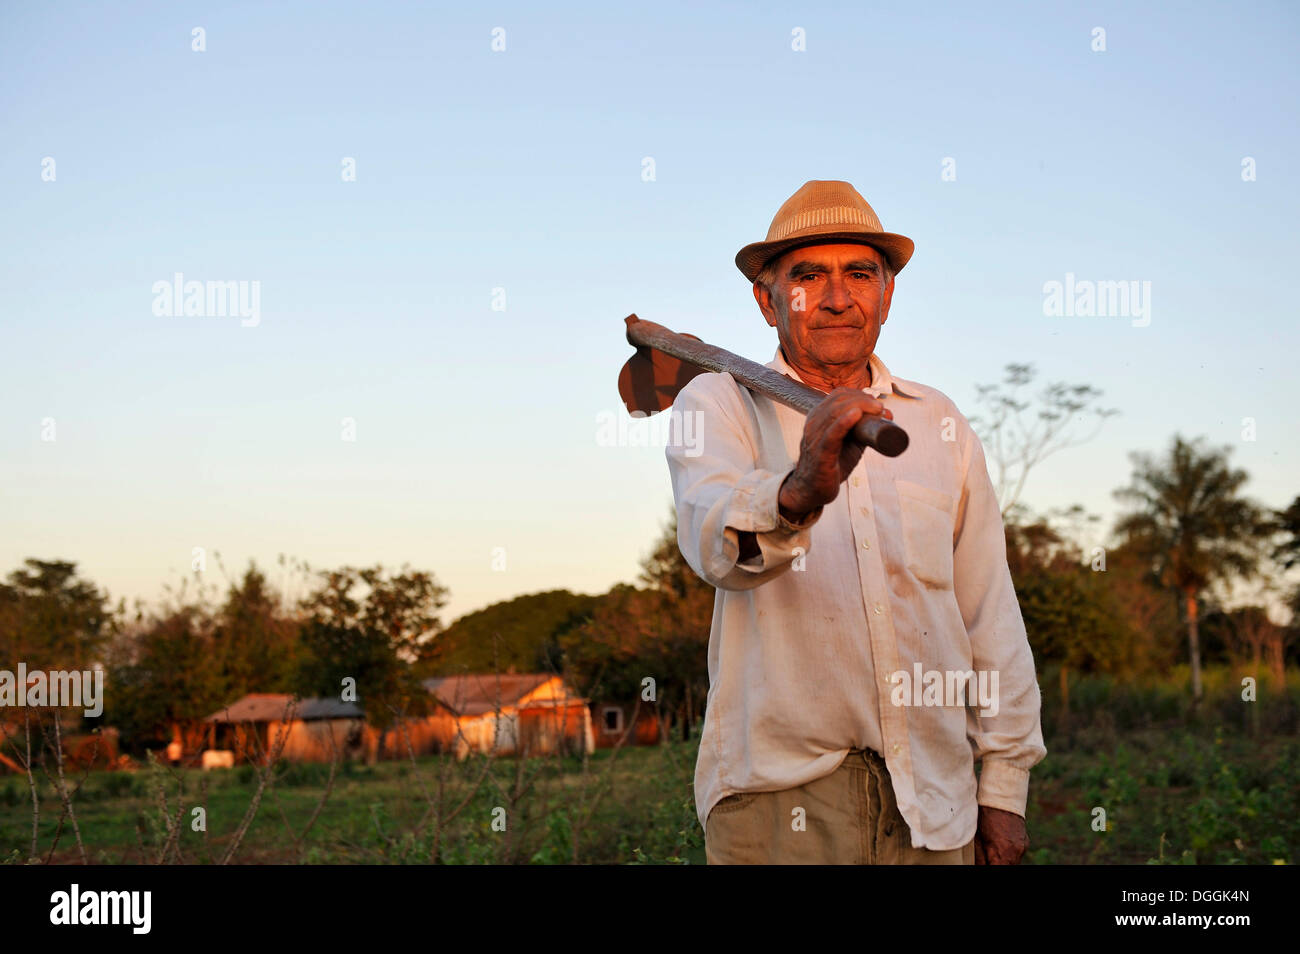 Peasant farmer, 70, standing with a hoe on a field, Pastoreo, Caaguazú Department, Paraguay - Stock Image